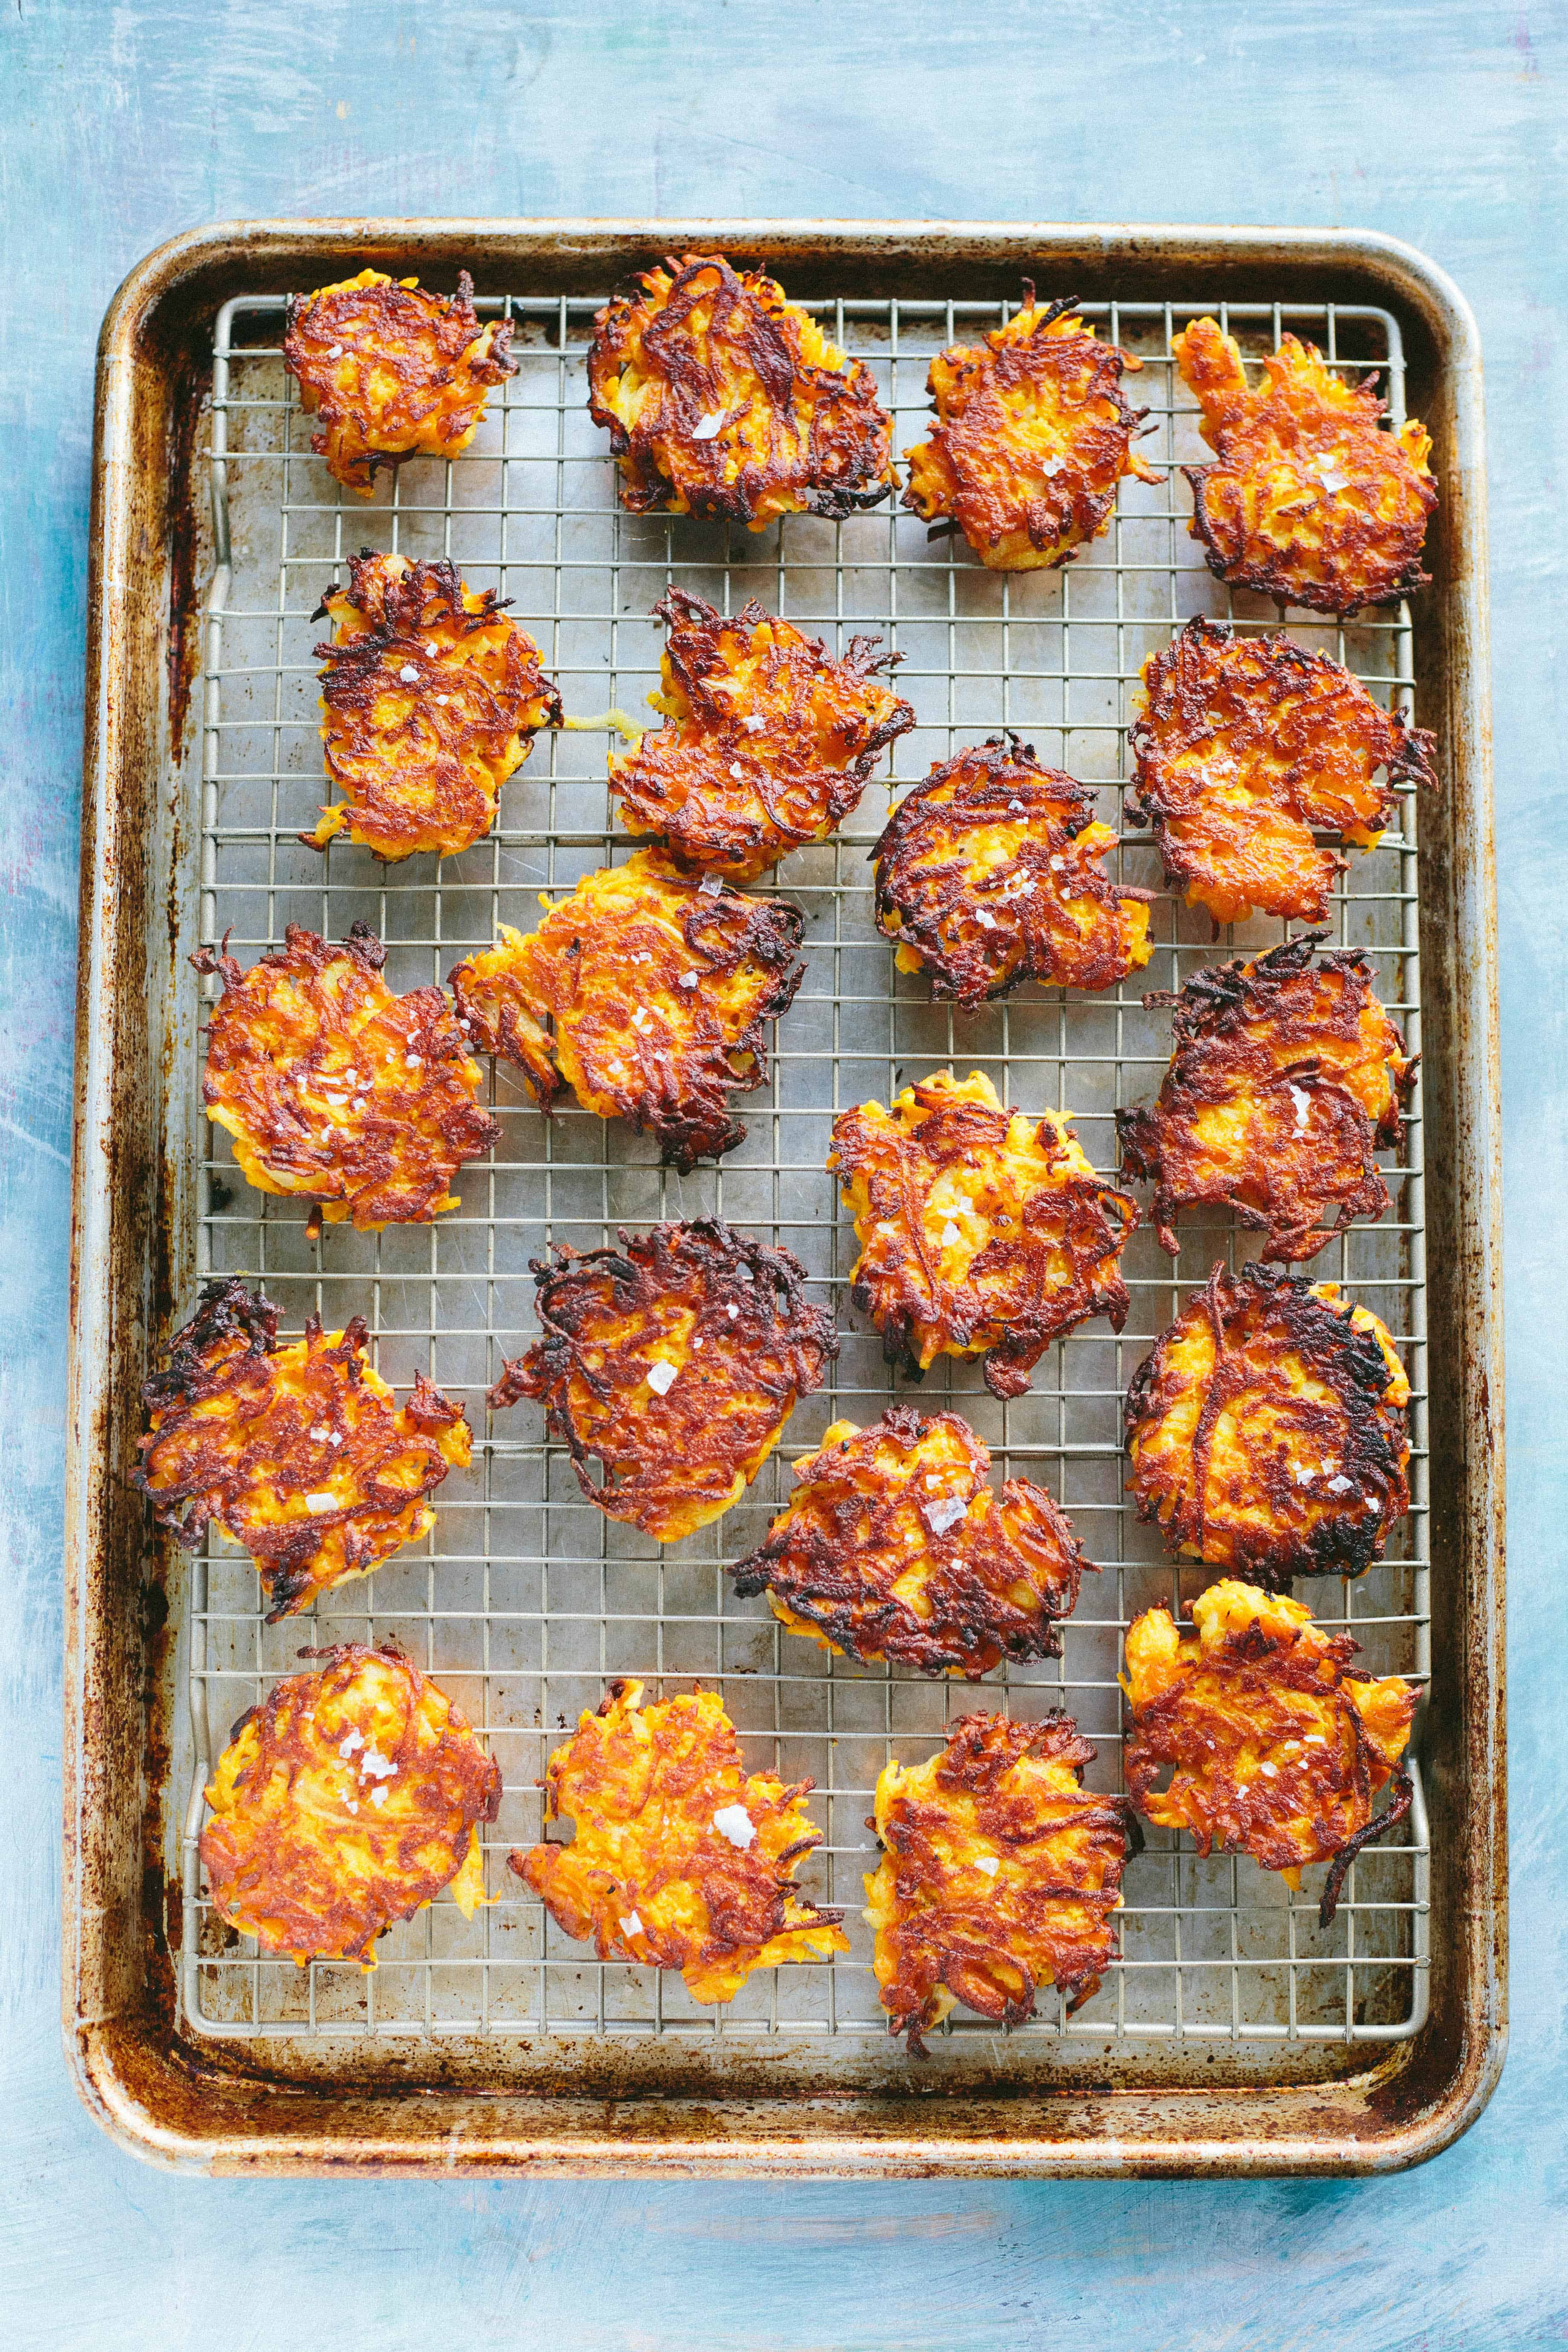 BUTTERNUT SQUASH FRITTERS with Spiced Yogurt | Best gluten free butternut squash fritters made with chick pea flour! Appetizer, side dish or light dinner #Thanksgiving #entertaining #recipe #butternut #squash #party #easy #glutenfree | ColeyCooks.com